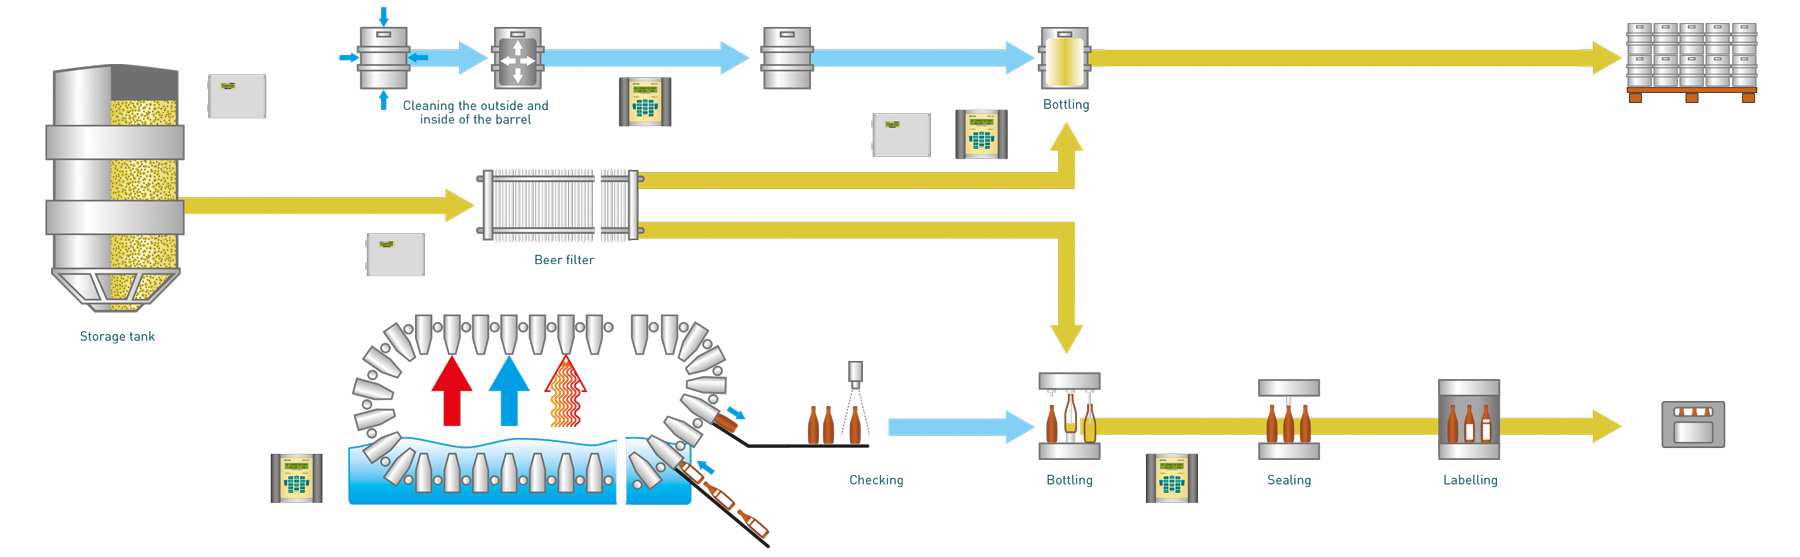 hight resolution of flow and thermal energy measurements in the beverage industry